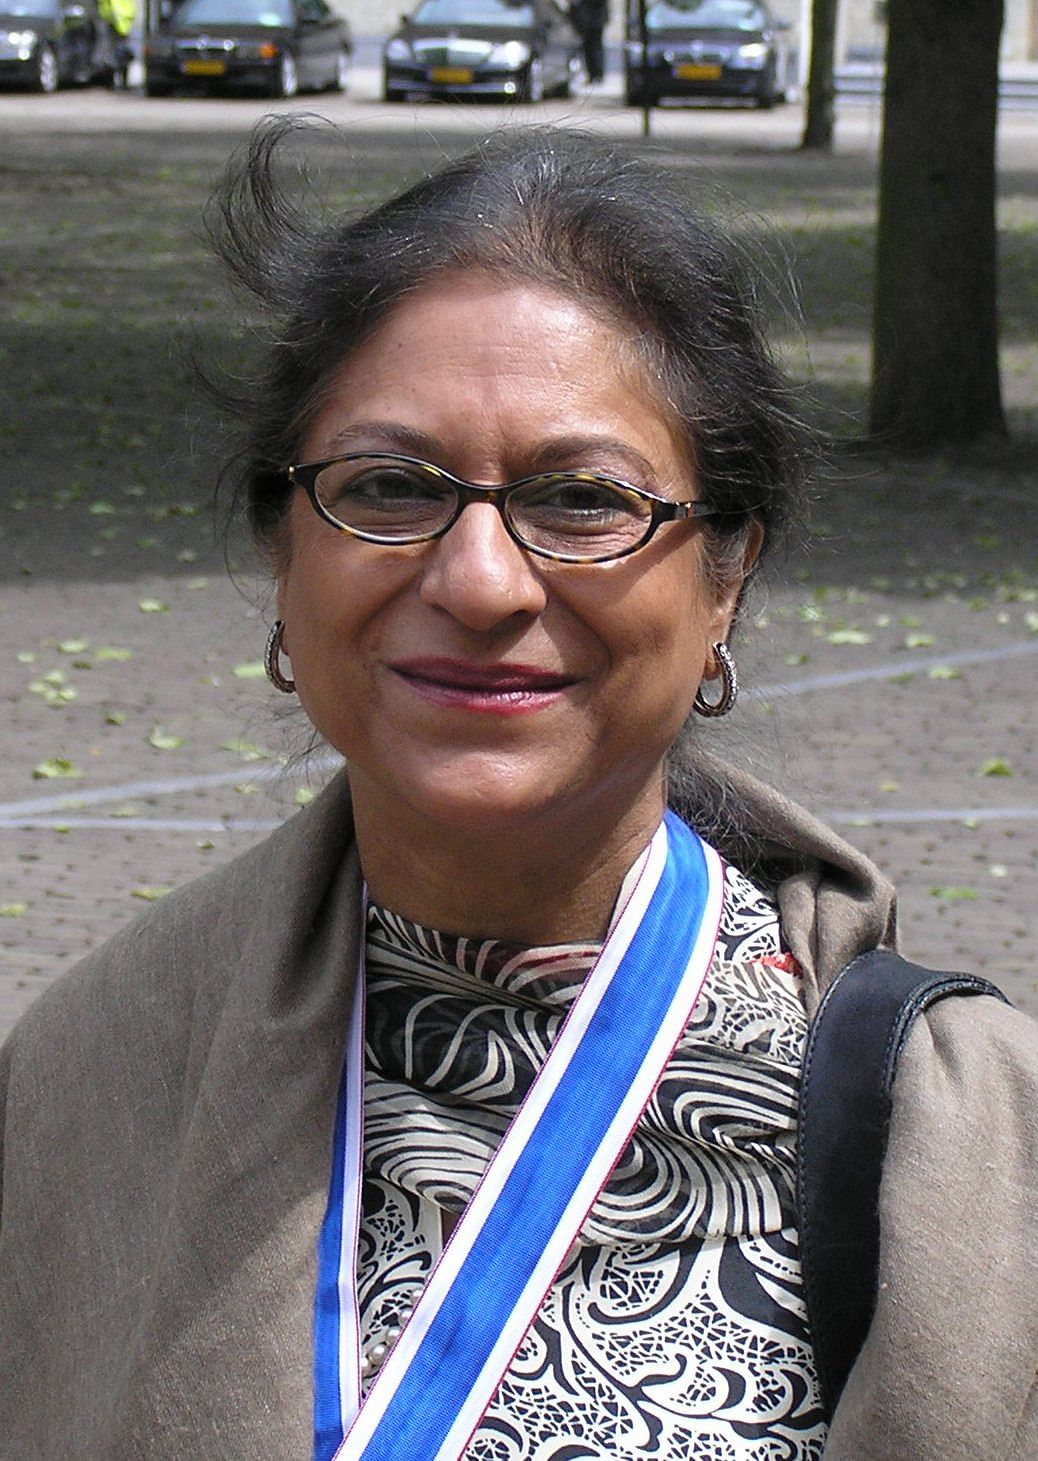 Pakistani human rights lawyer and social activist Asma Jahangir died in Lahore, on Sunday, 11 February, of cardiac arrest.